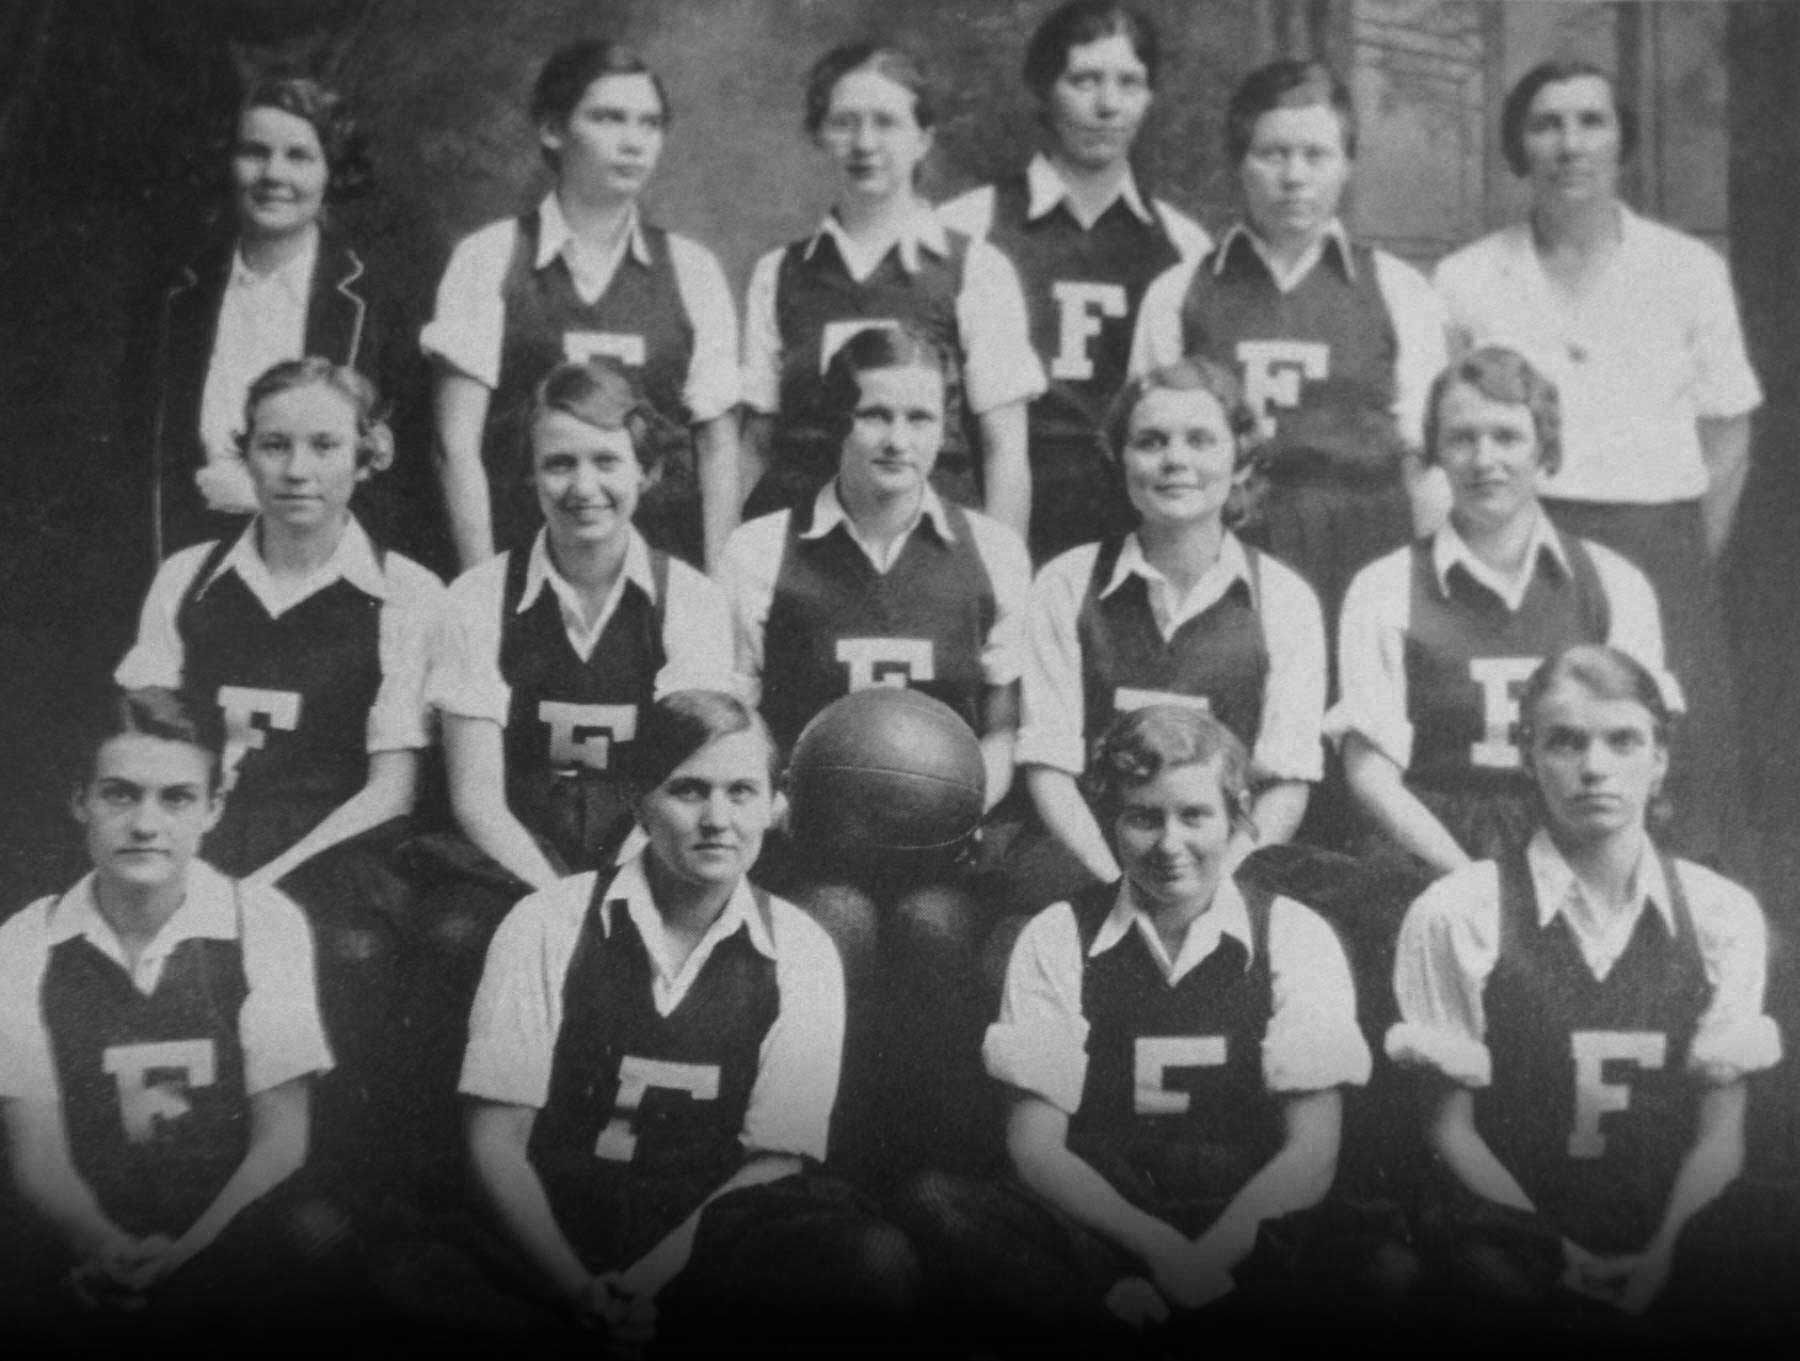 1931: Basketball Squad poses for a team portrait